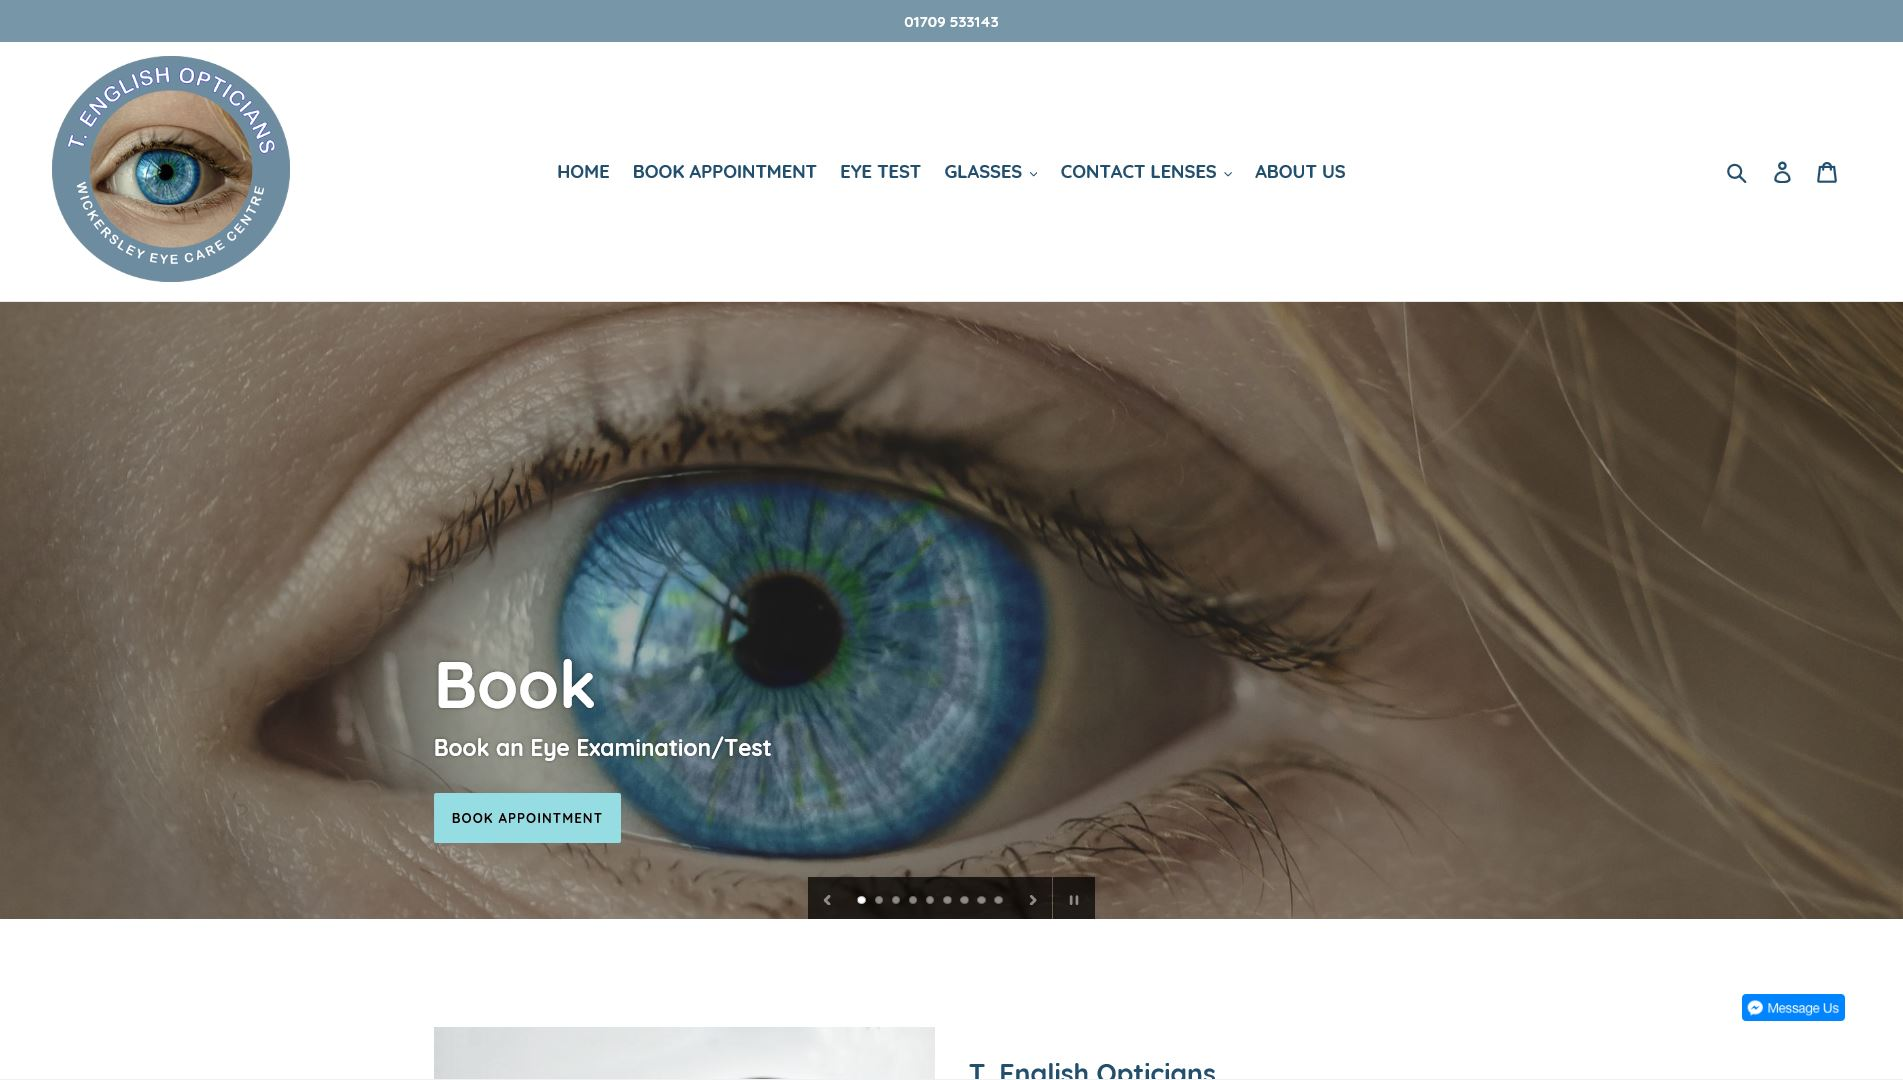 T English Opticians